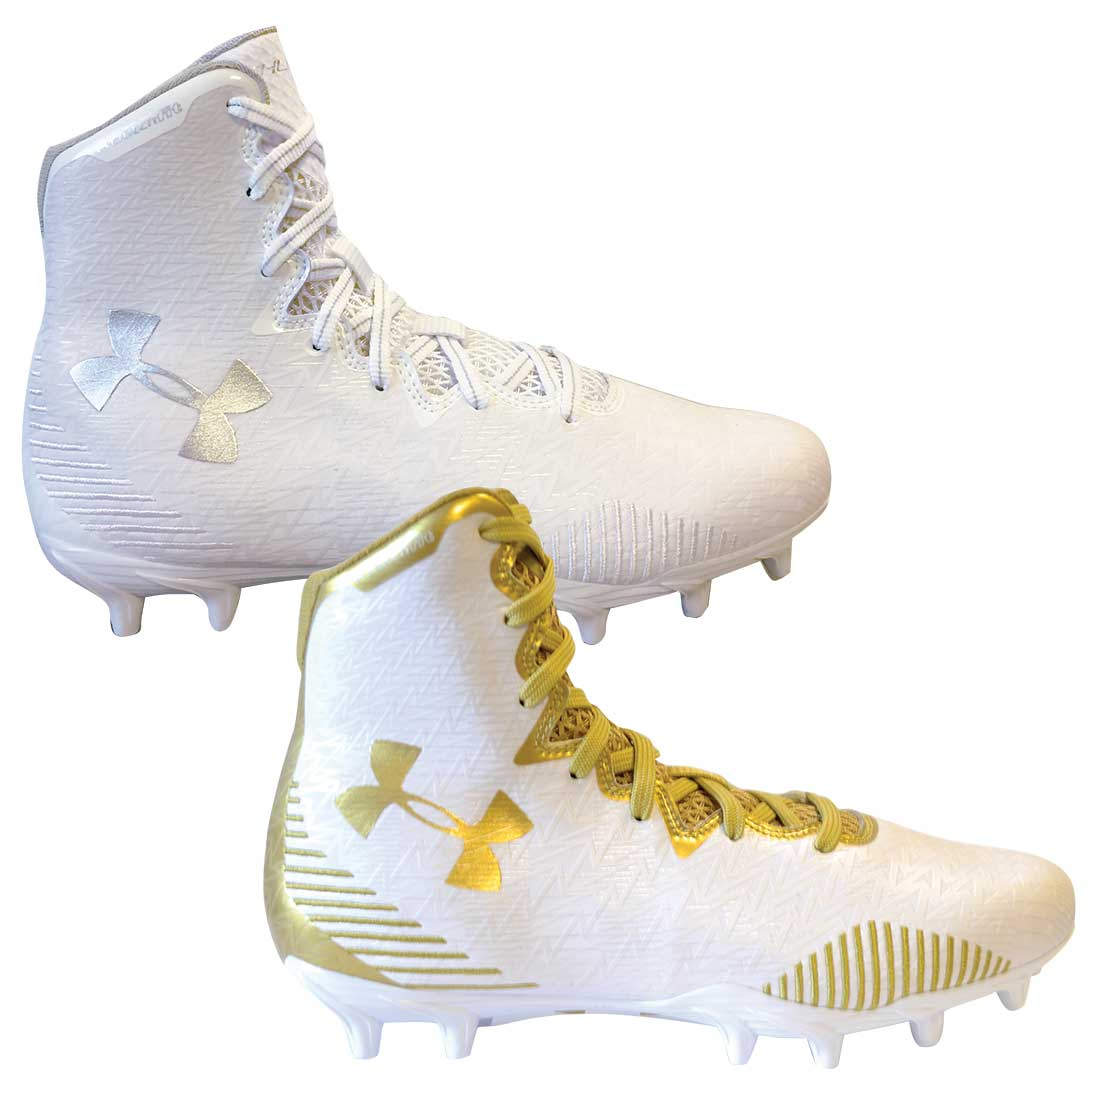 ua highlight cleats for sale